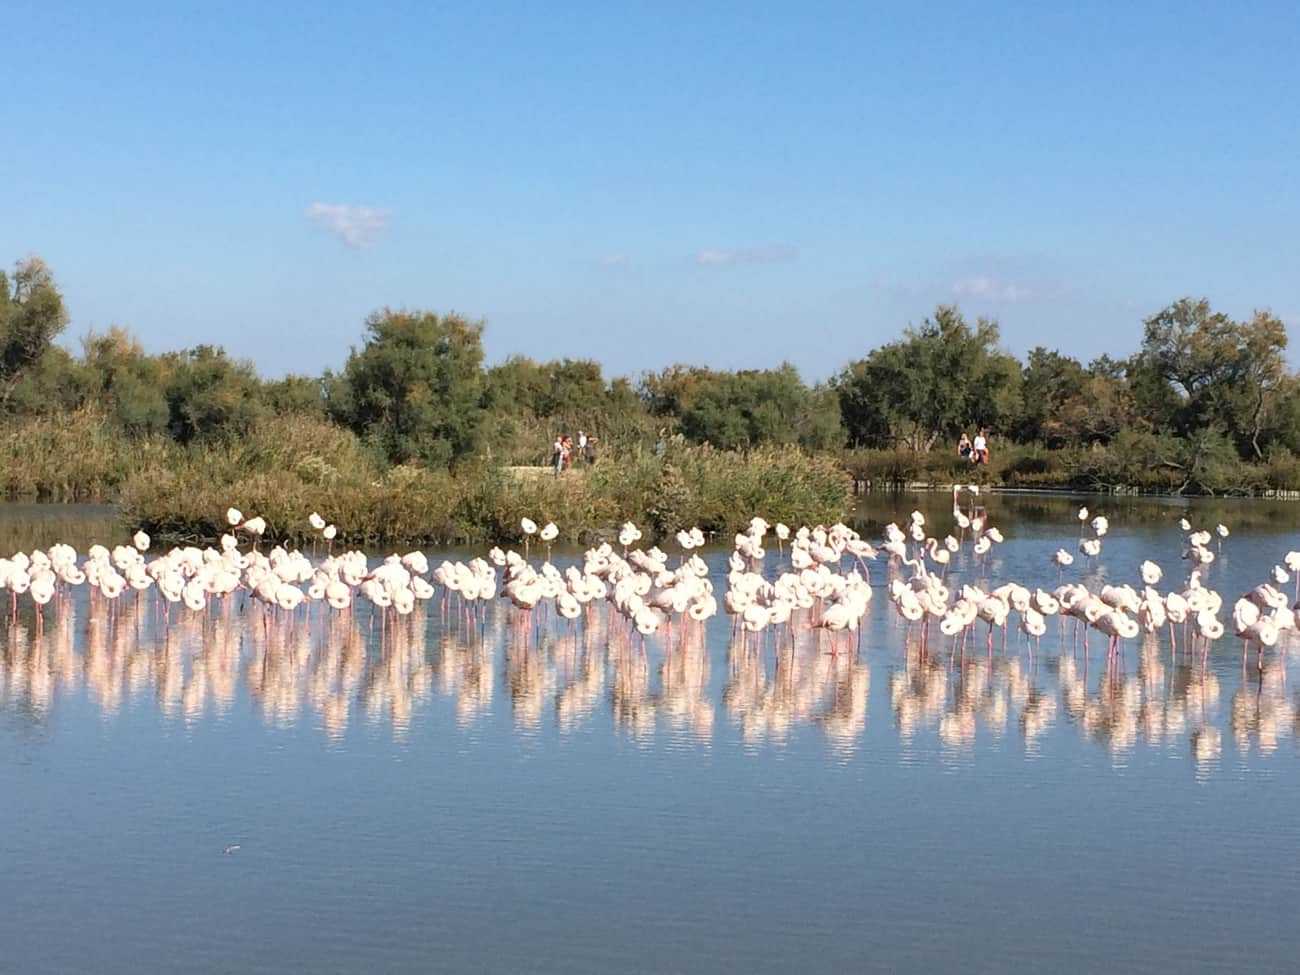 Camargue - flamingo reflections